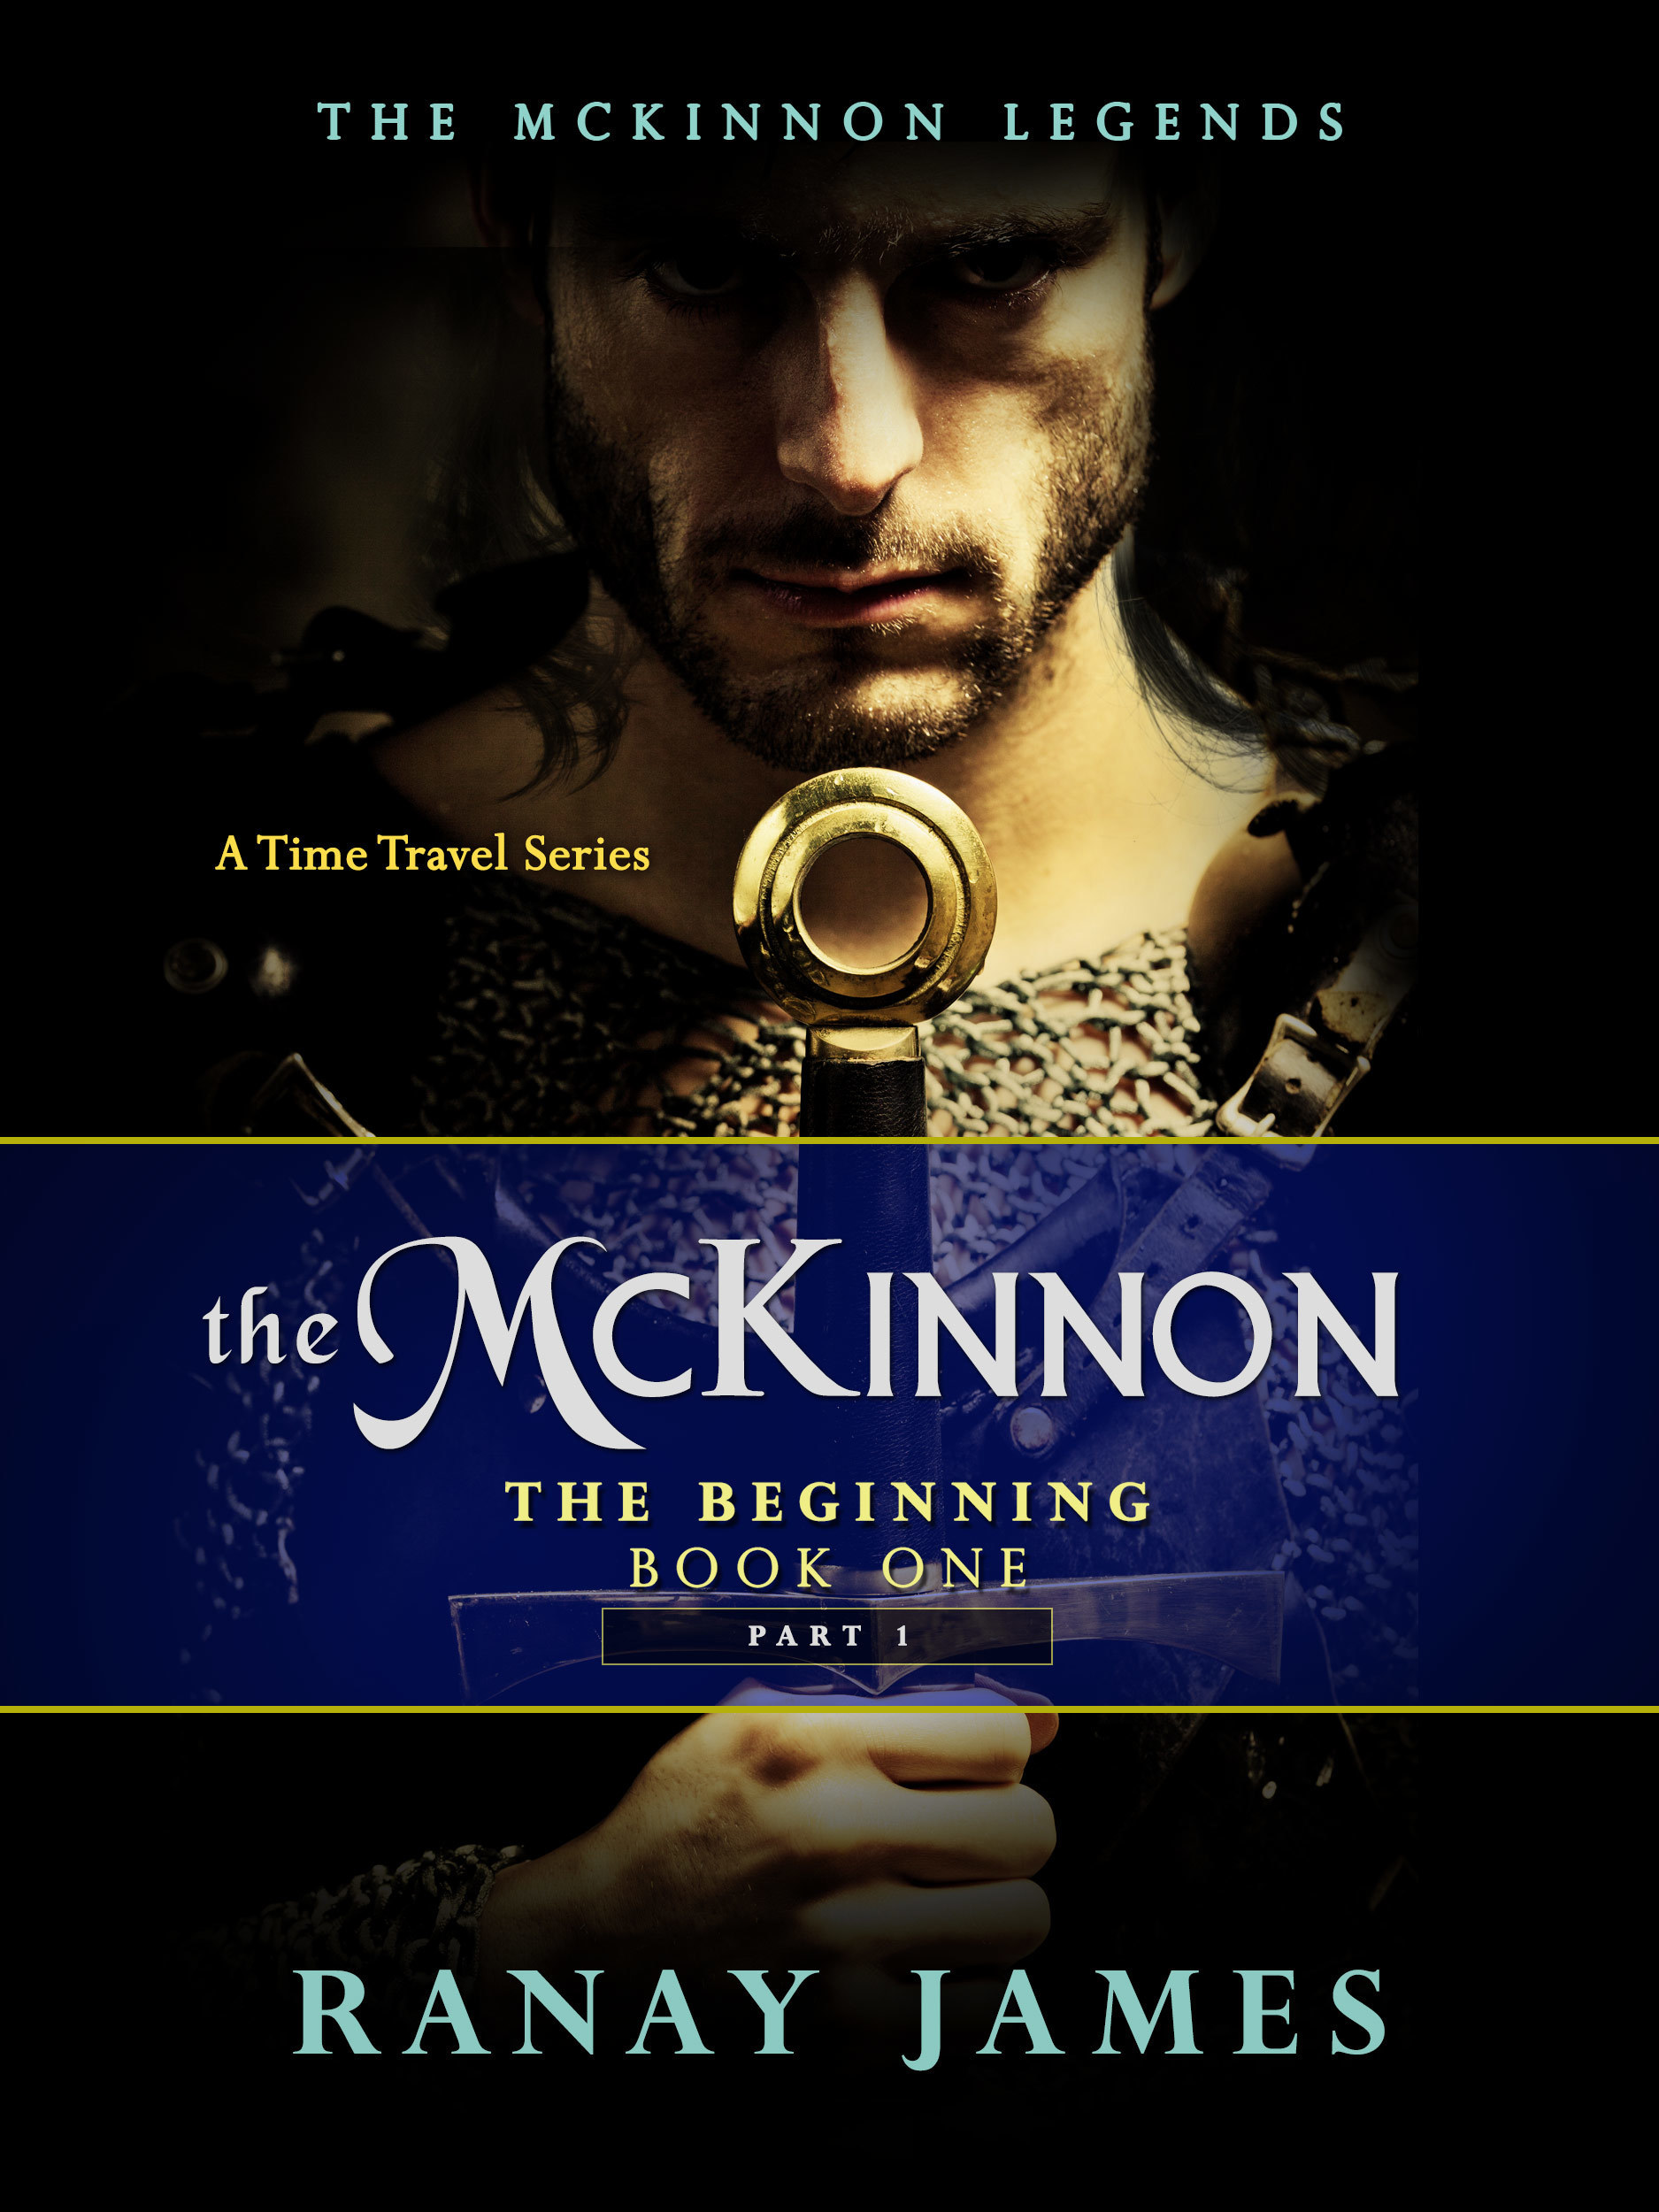 The McKinnon The Beginning: Book 1 - Part 1 The McKinnon Legends (A Time Travel Series)  by  Ranay James